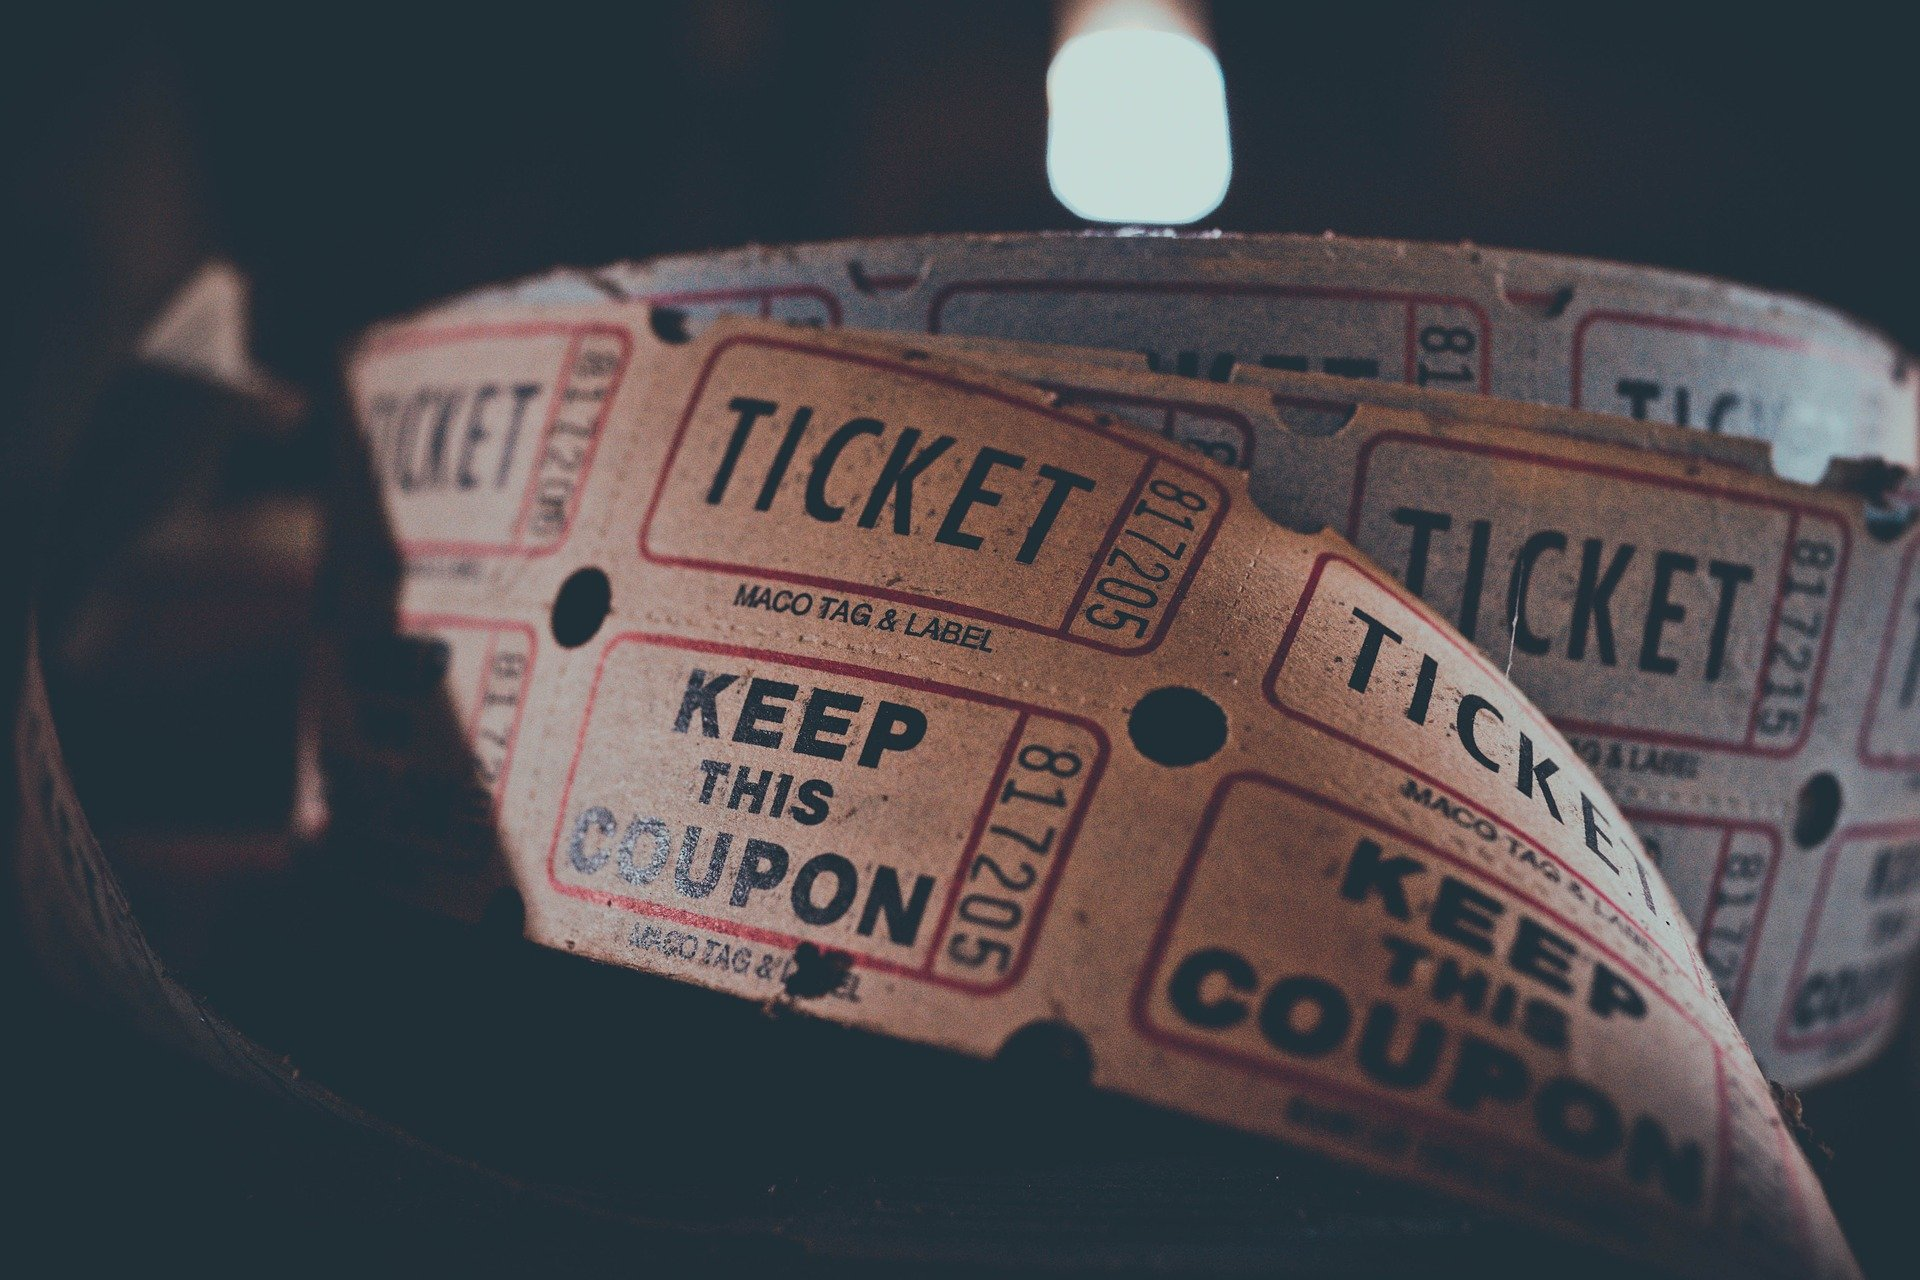 Decorative image of tickets